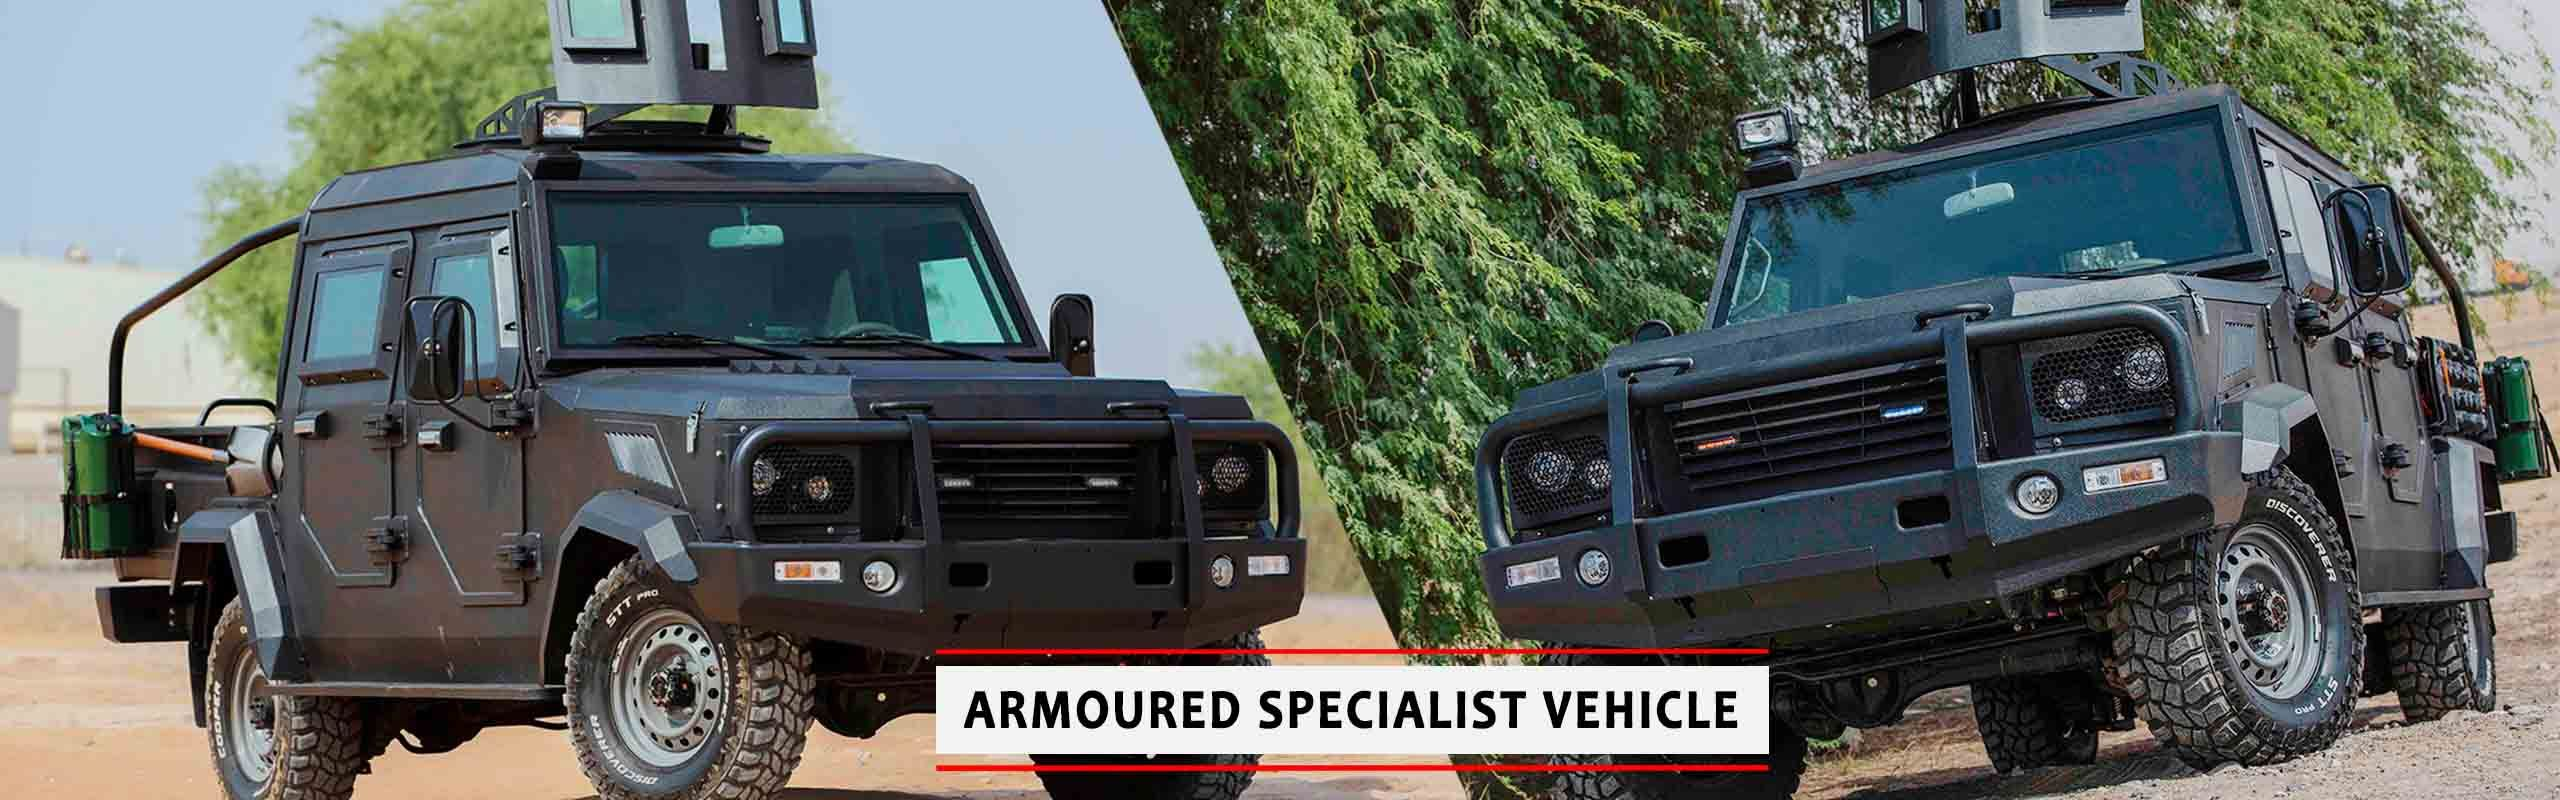 The MEVA Armoured Specialist Vehicle (ASV) is a pickup